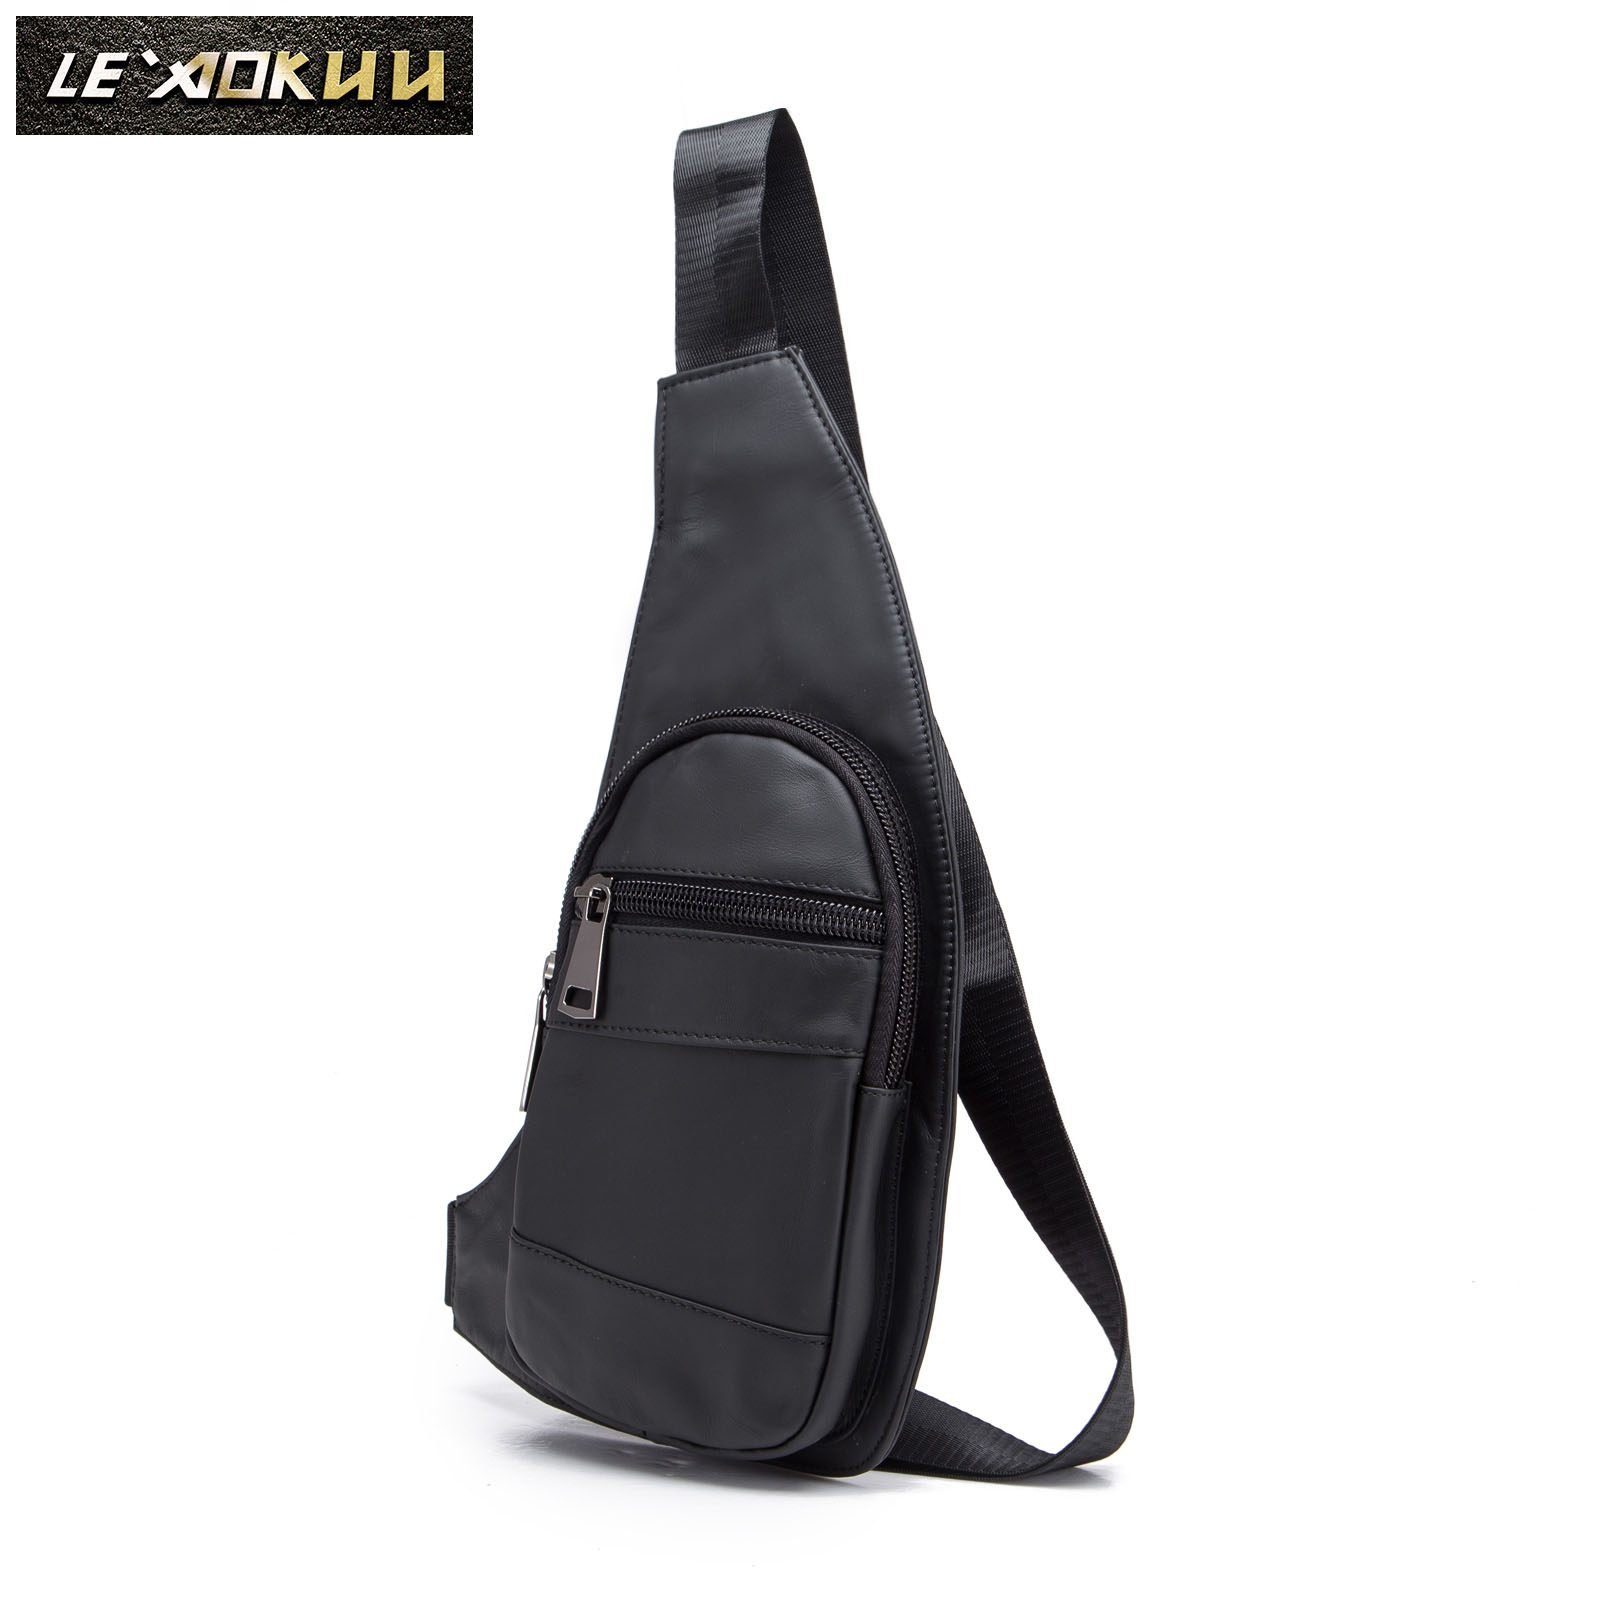 Men Genuine Quality Leather Casual Fashion Travel Chest Pack Sling Bag Design Triangle One Shoulder Crossbody Bag Daypack 2020